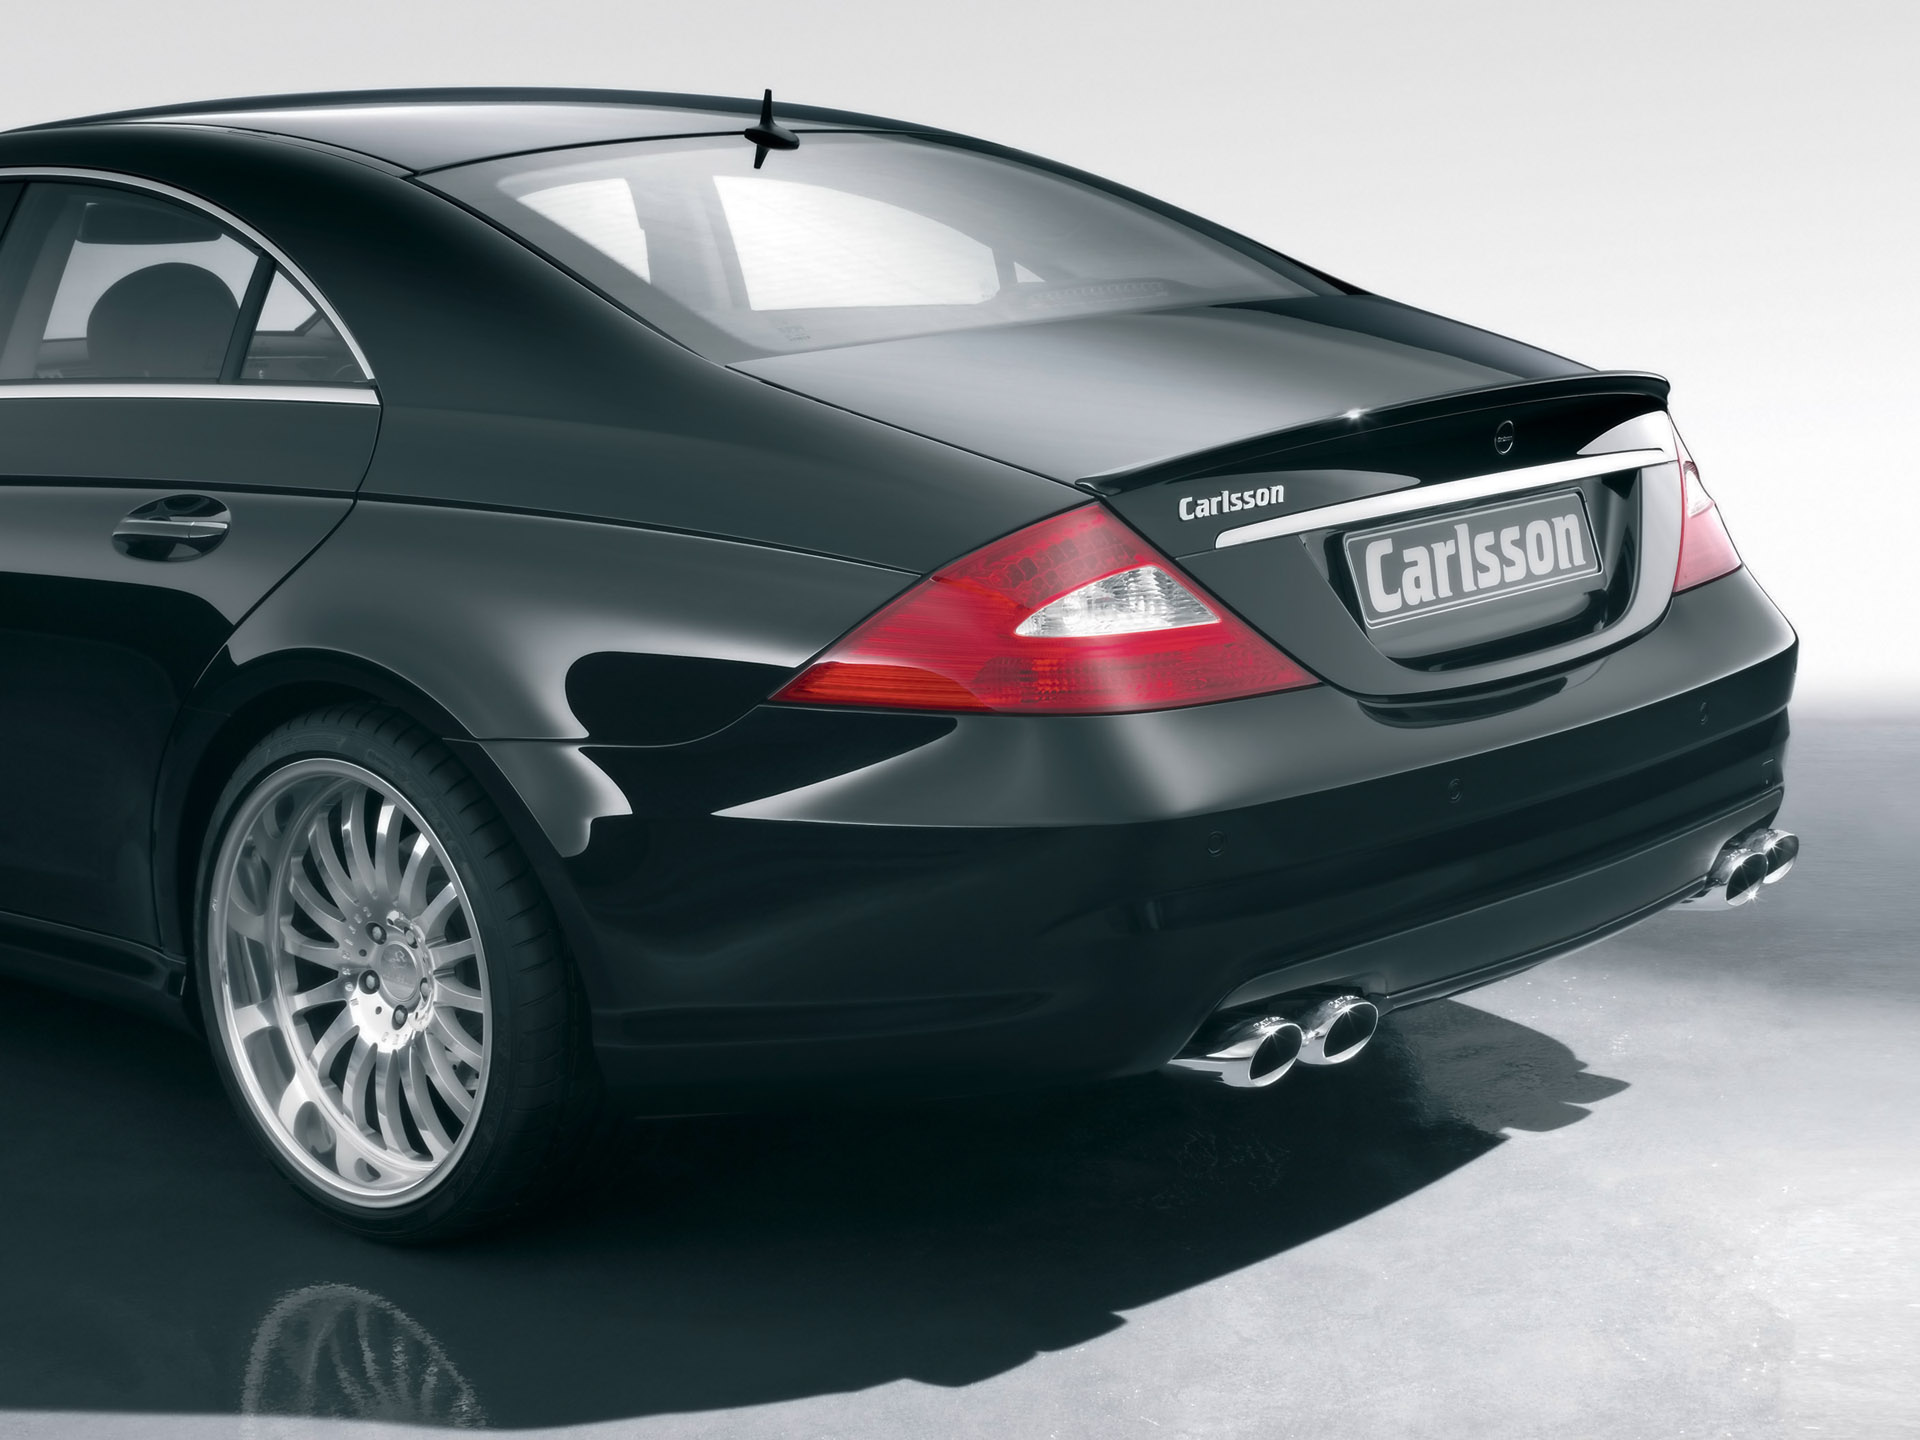 2005 mercedes benz cls 500 images photo 2005 carlsson